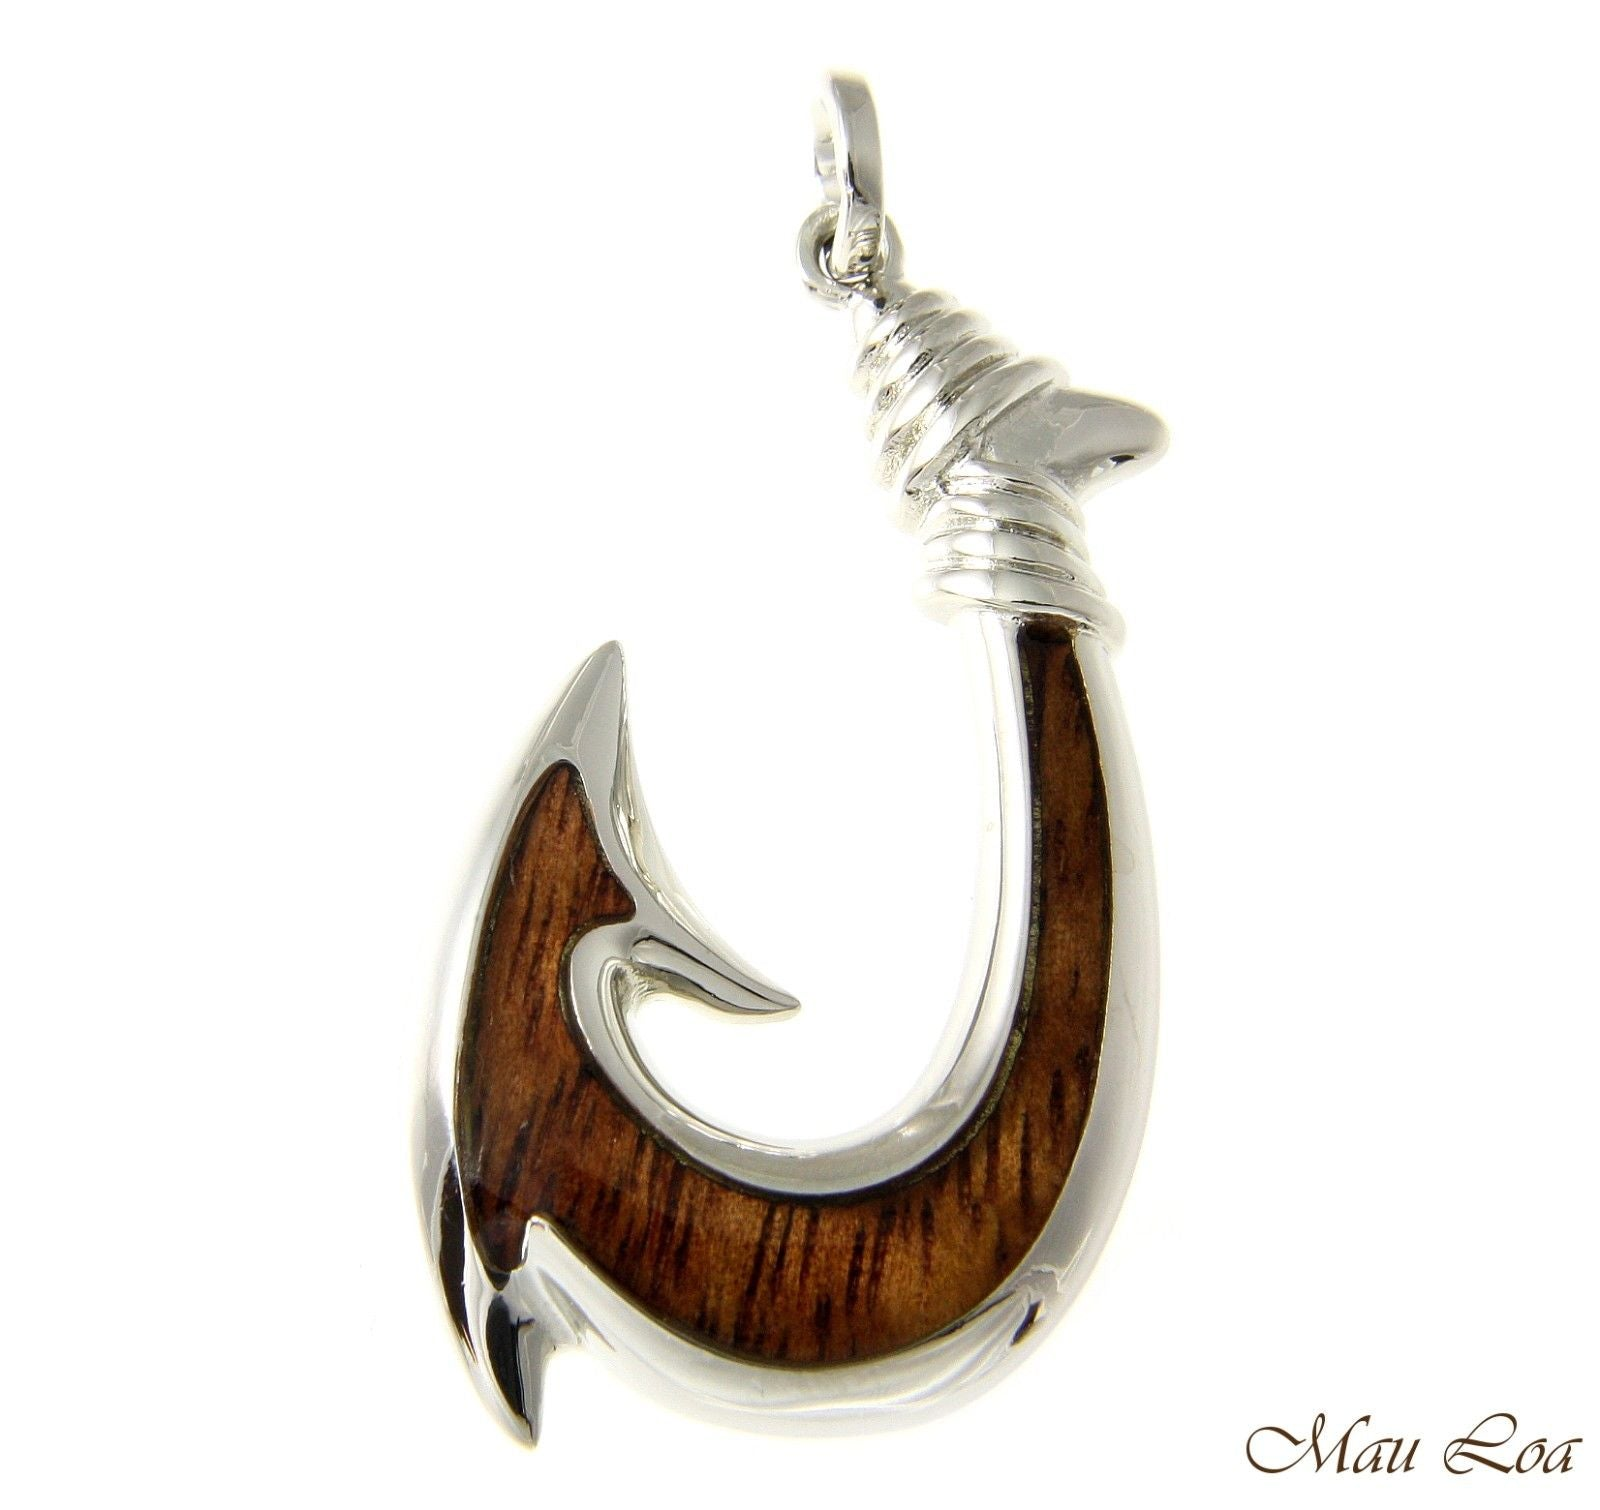 Koa Wood Hawaiian Wave Fish Hook Rhodium Silver Plated Brass Reversible Pendant